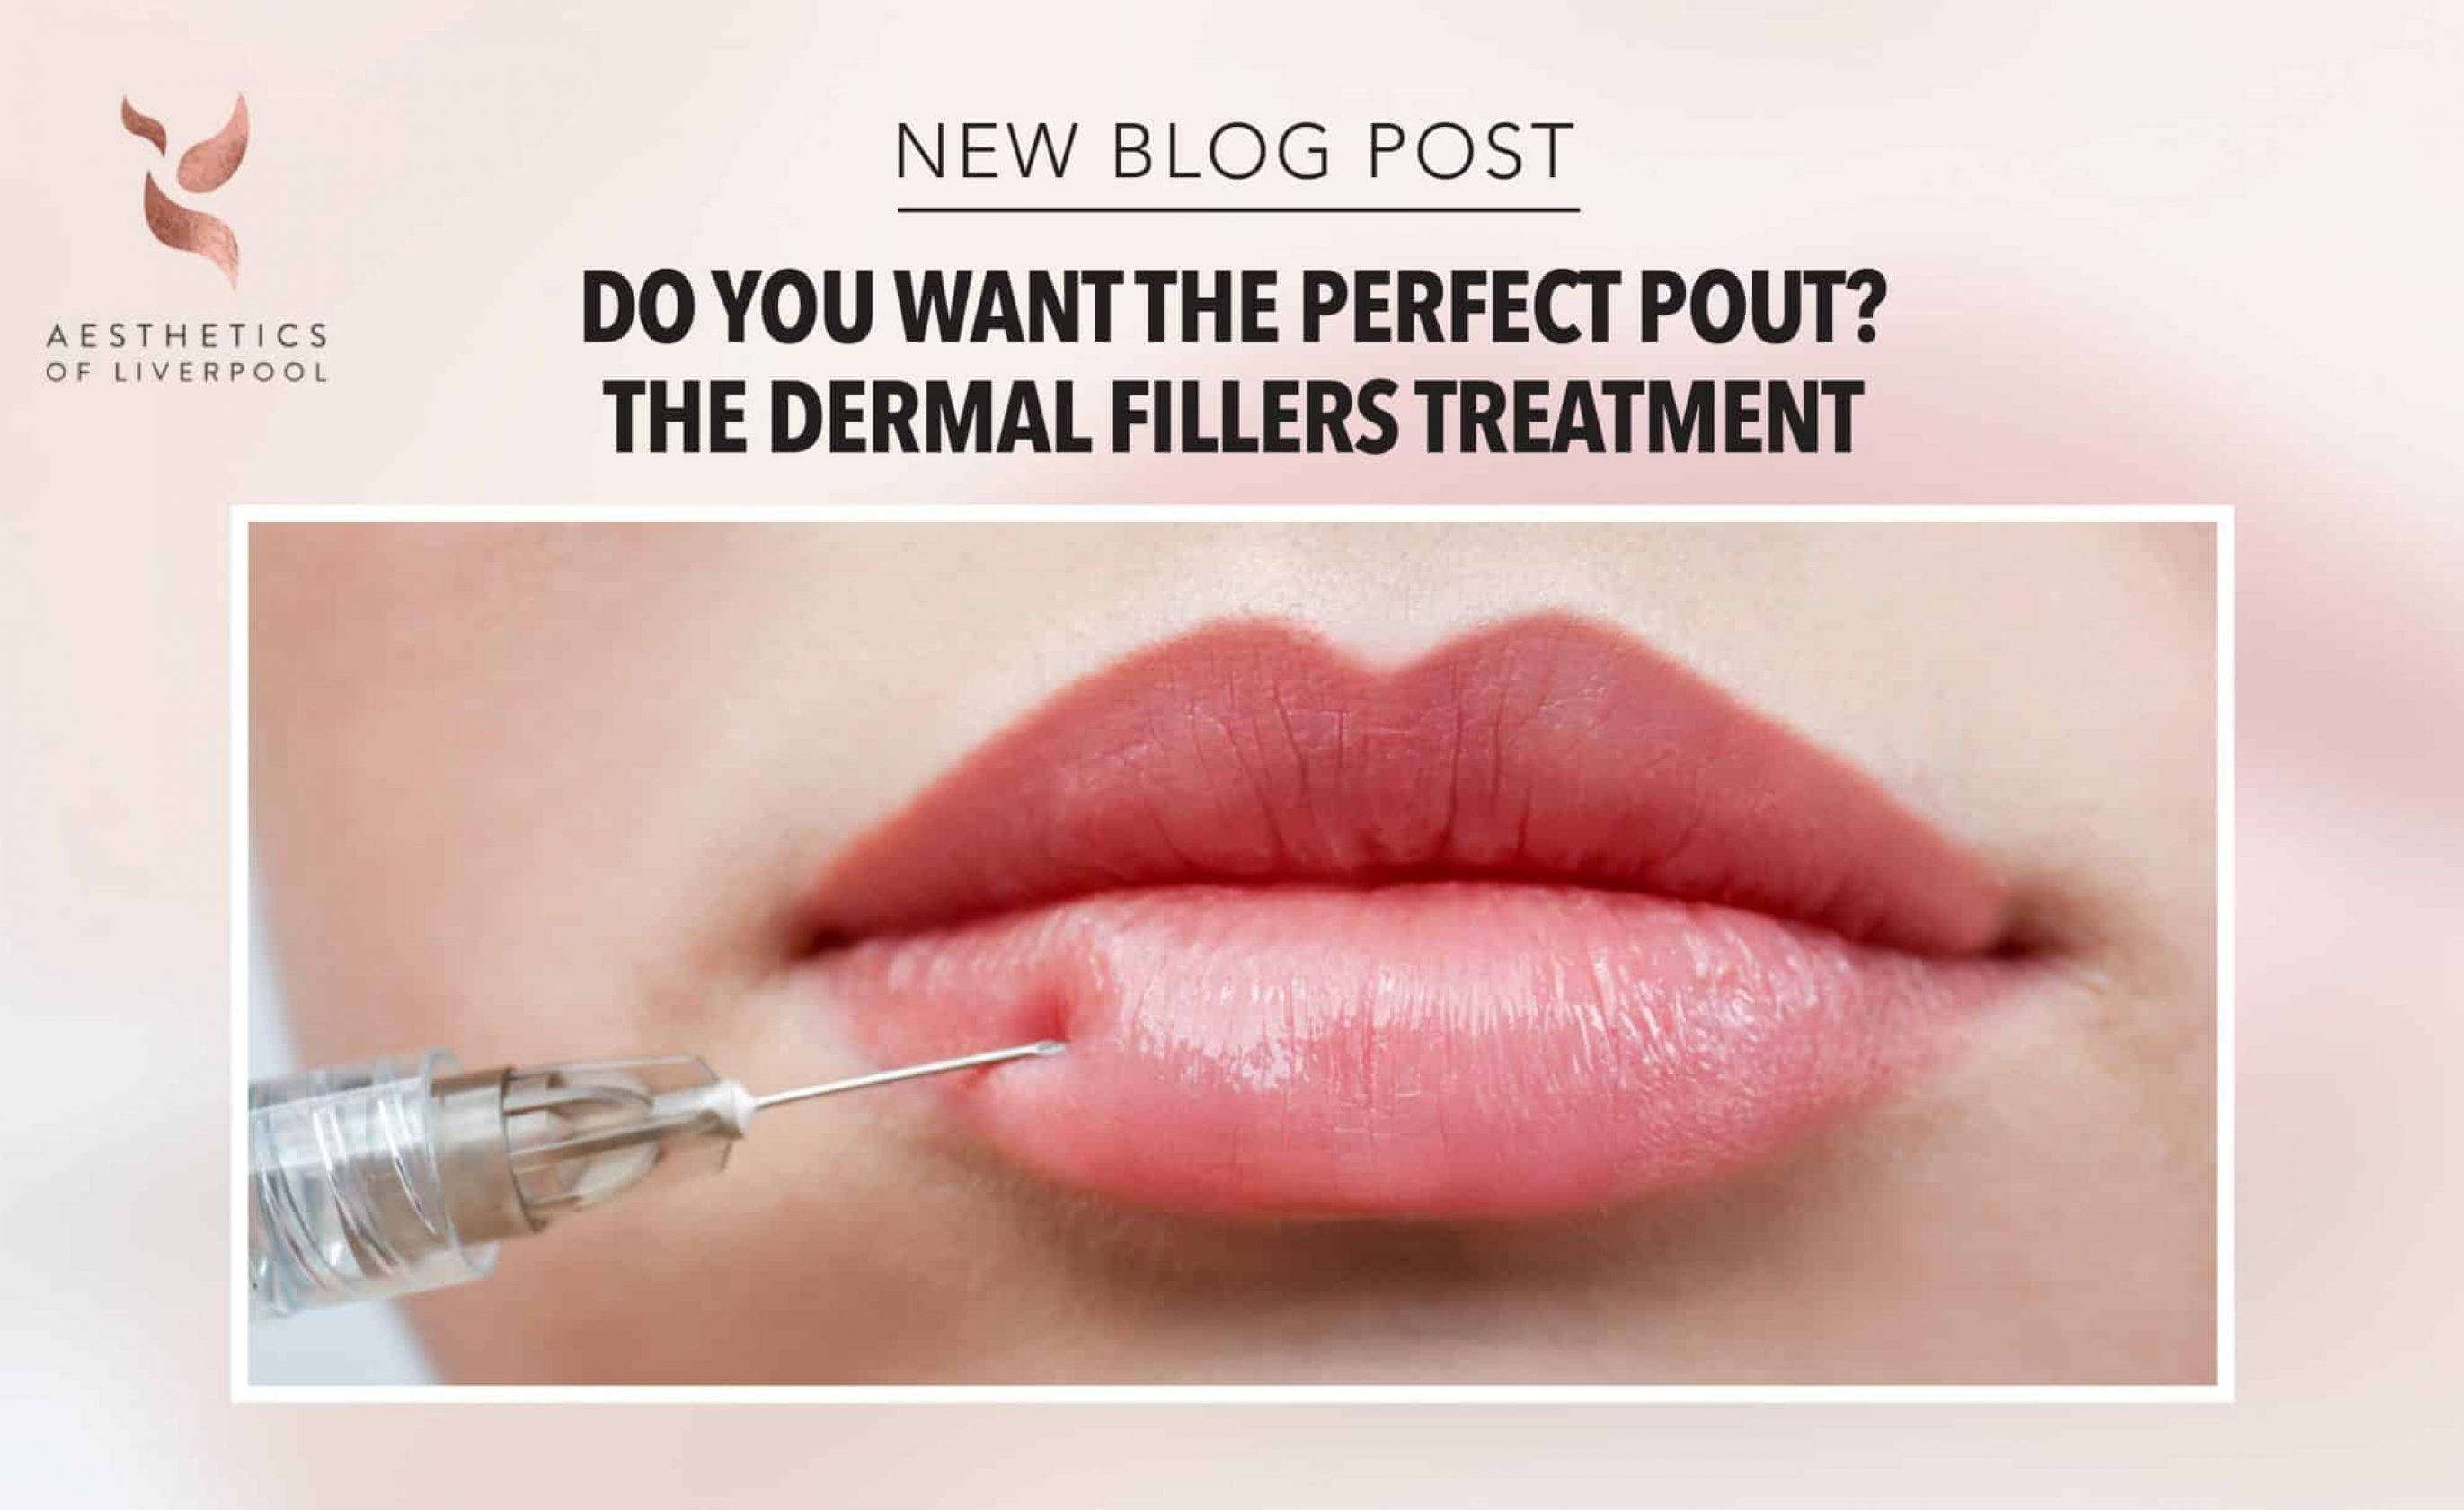 Do You Want the Perfect Pout? The Dermal Fillers Treatment